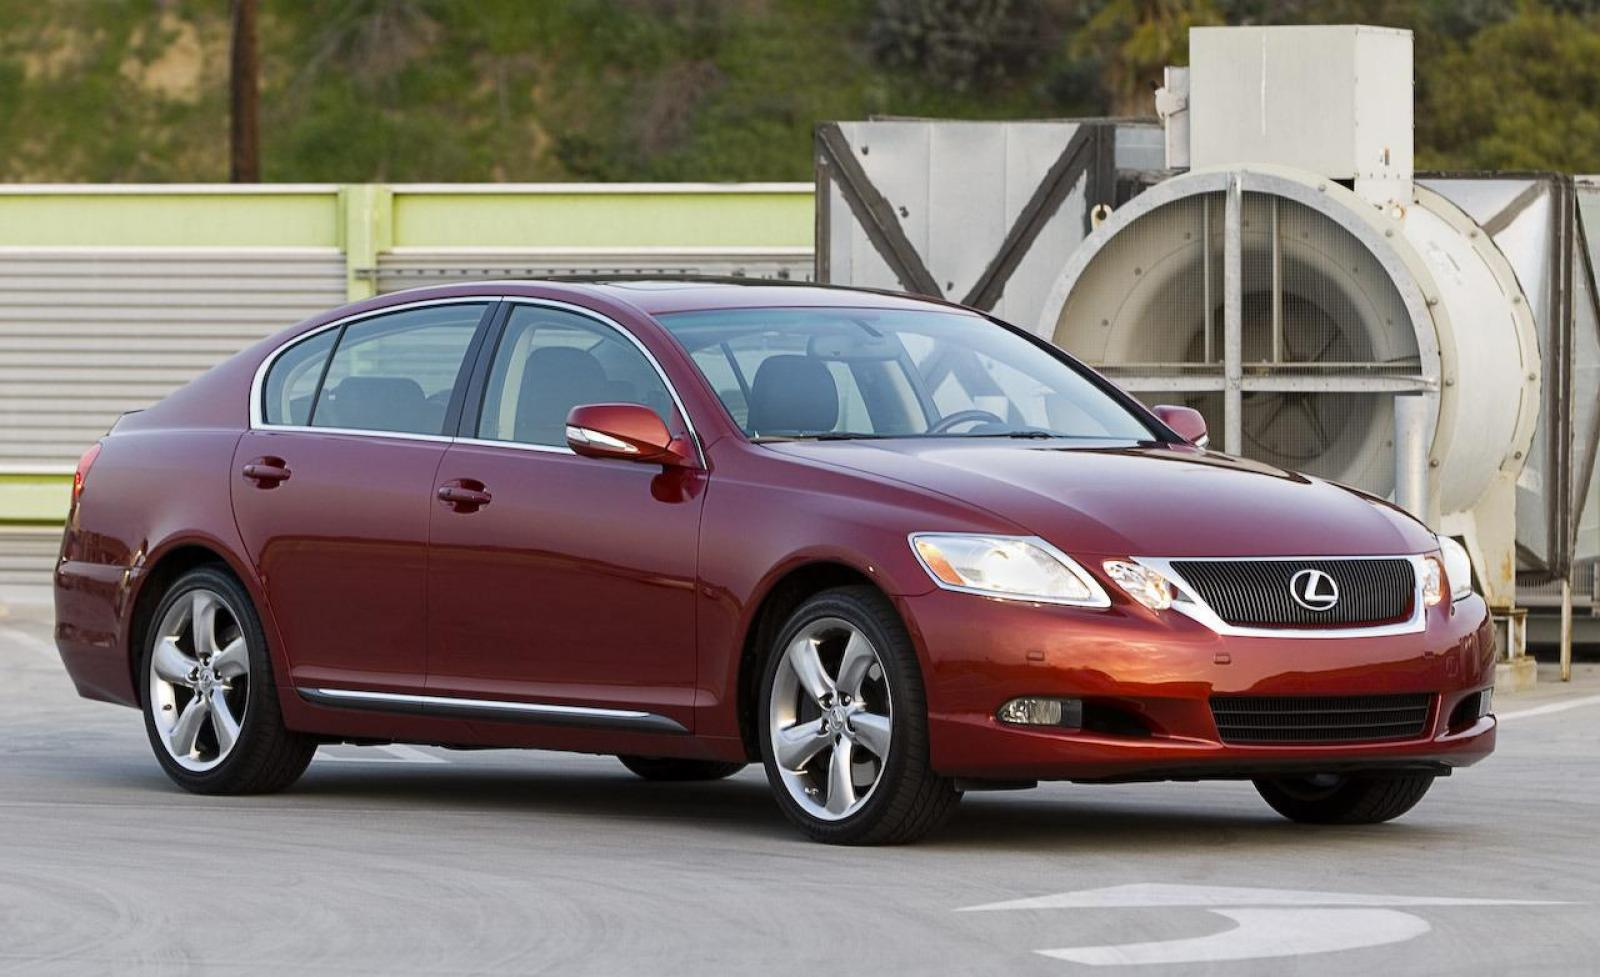 2008 Lexus Gs 460 Information And Photos Zombiedrive